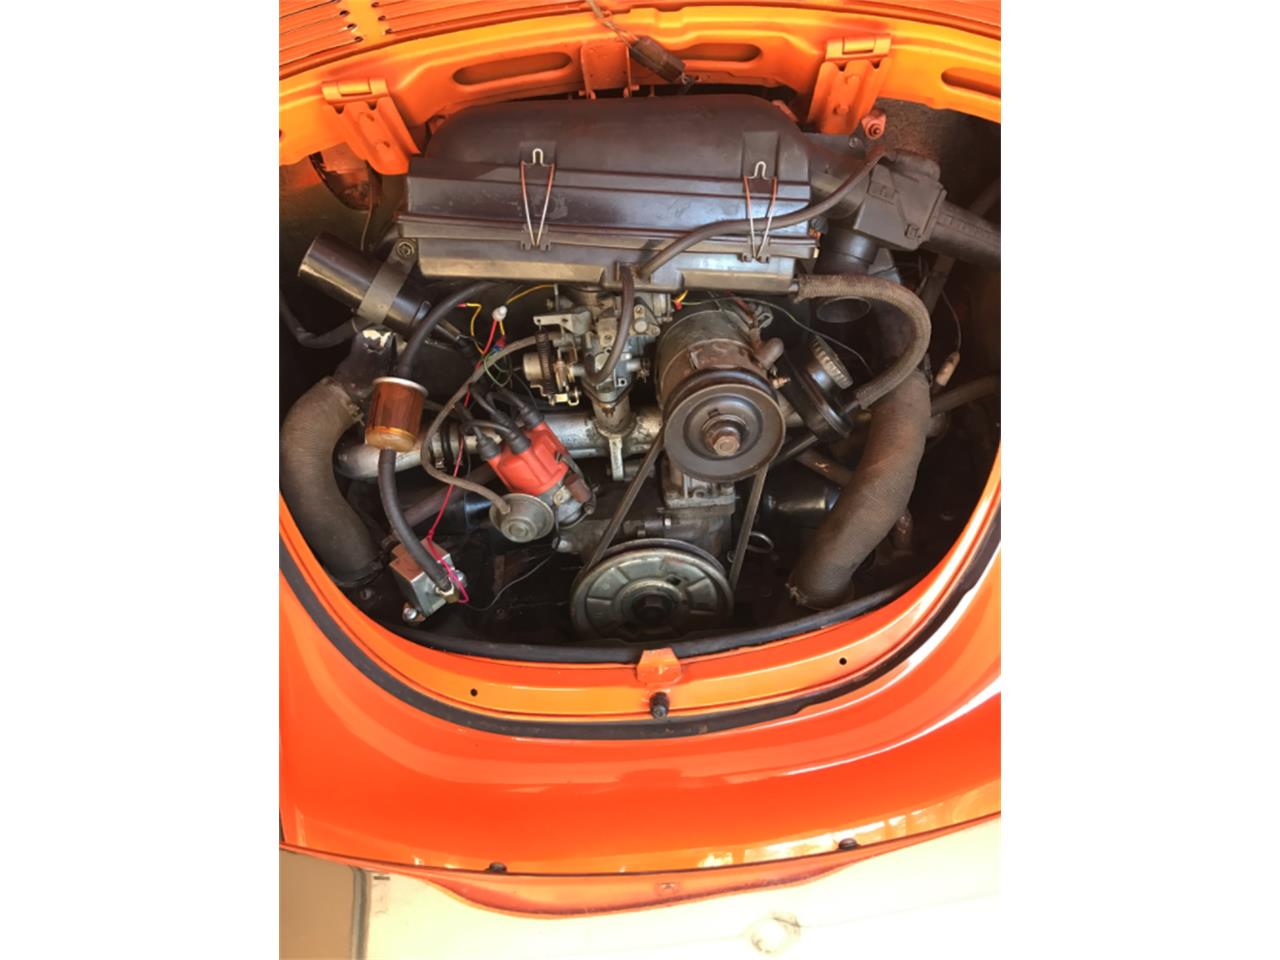 1976 Volkswagen Super Beetle for sale in Richmond , VA – photo 27